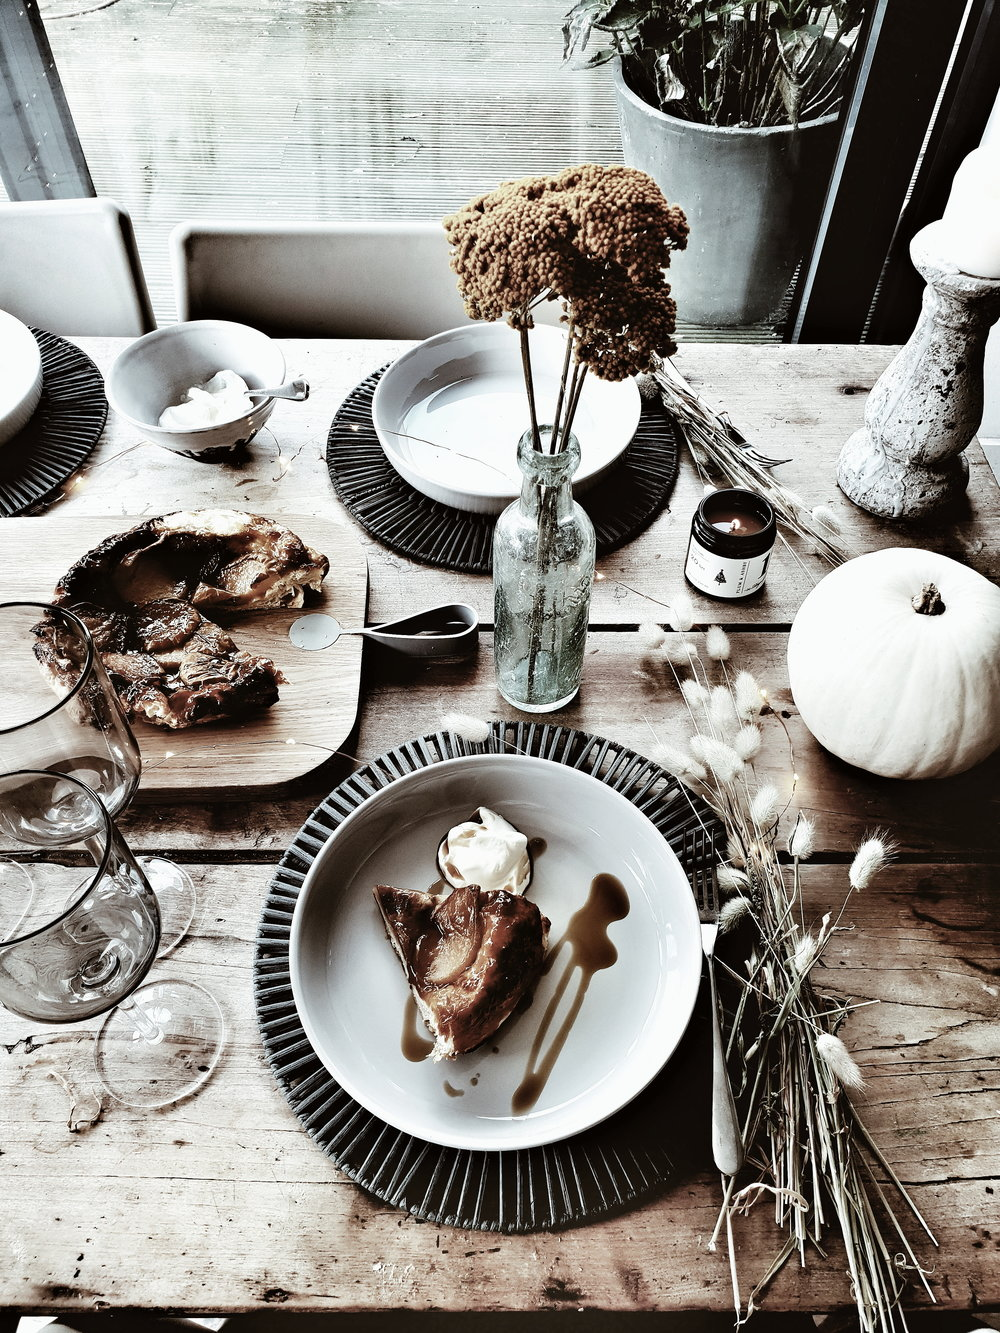 Pear Tarte Tatin served up on pale grey plates from Sainsbury's Home on a rustic wooden farmphuse table and set with vintage bottles and dried flowers for a modern rustic feel #farmhousekitchen #farmhousedecor #kitchentable #vintagekitchentable #autumnalstylingideas #autumnideas